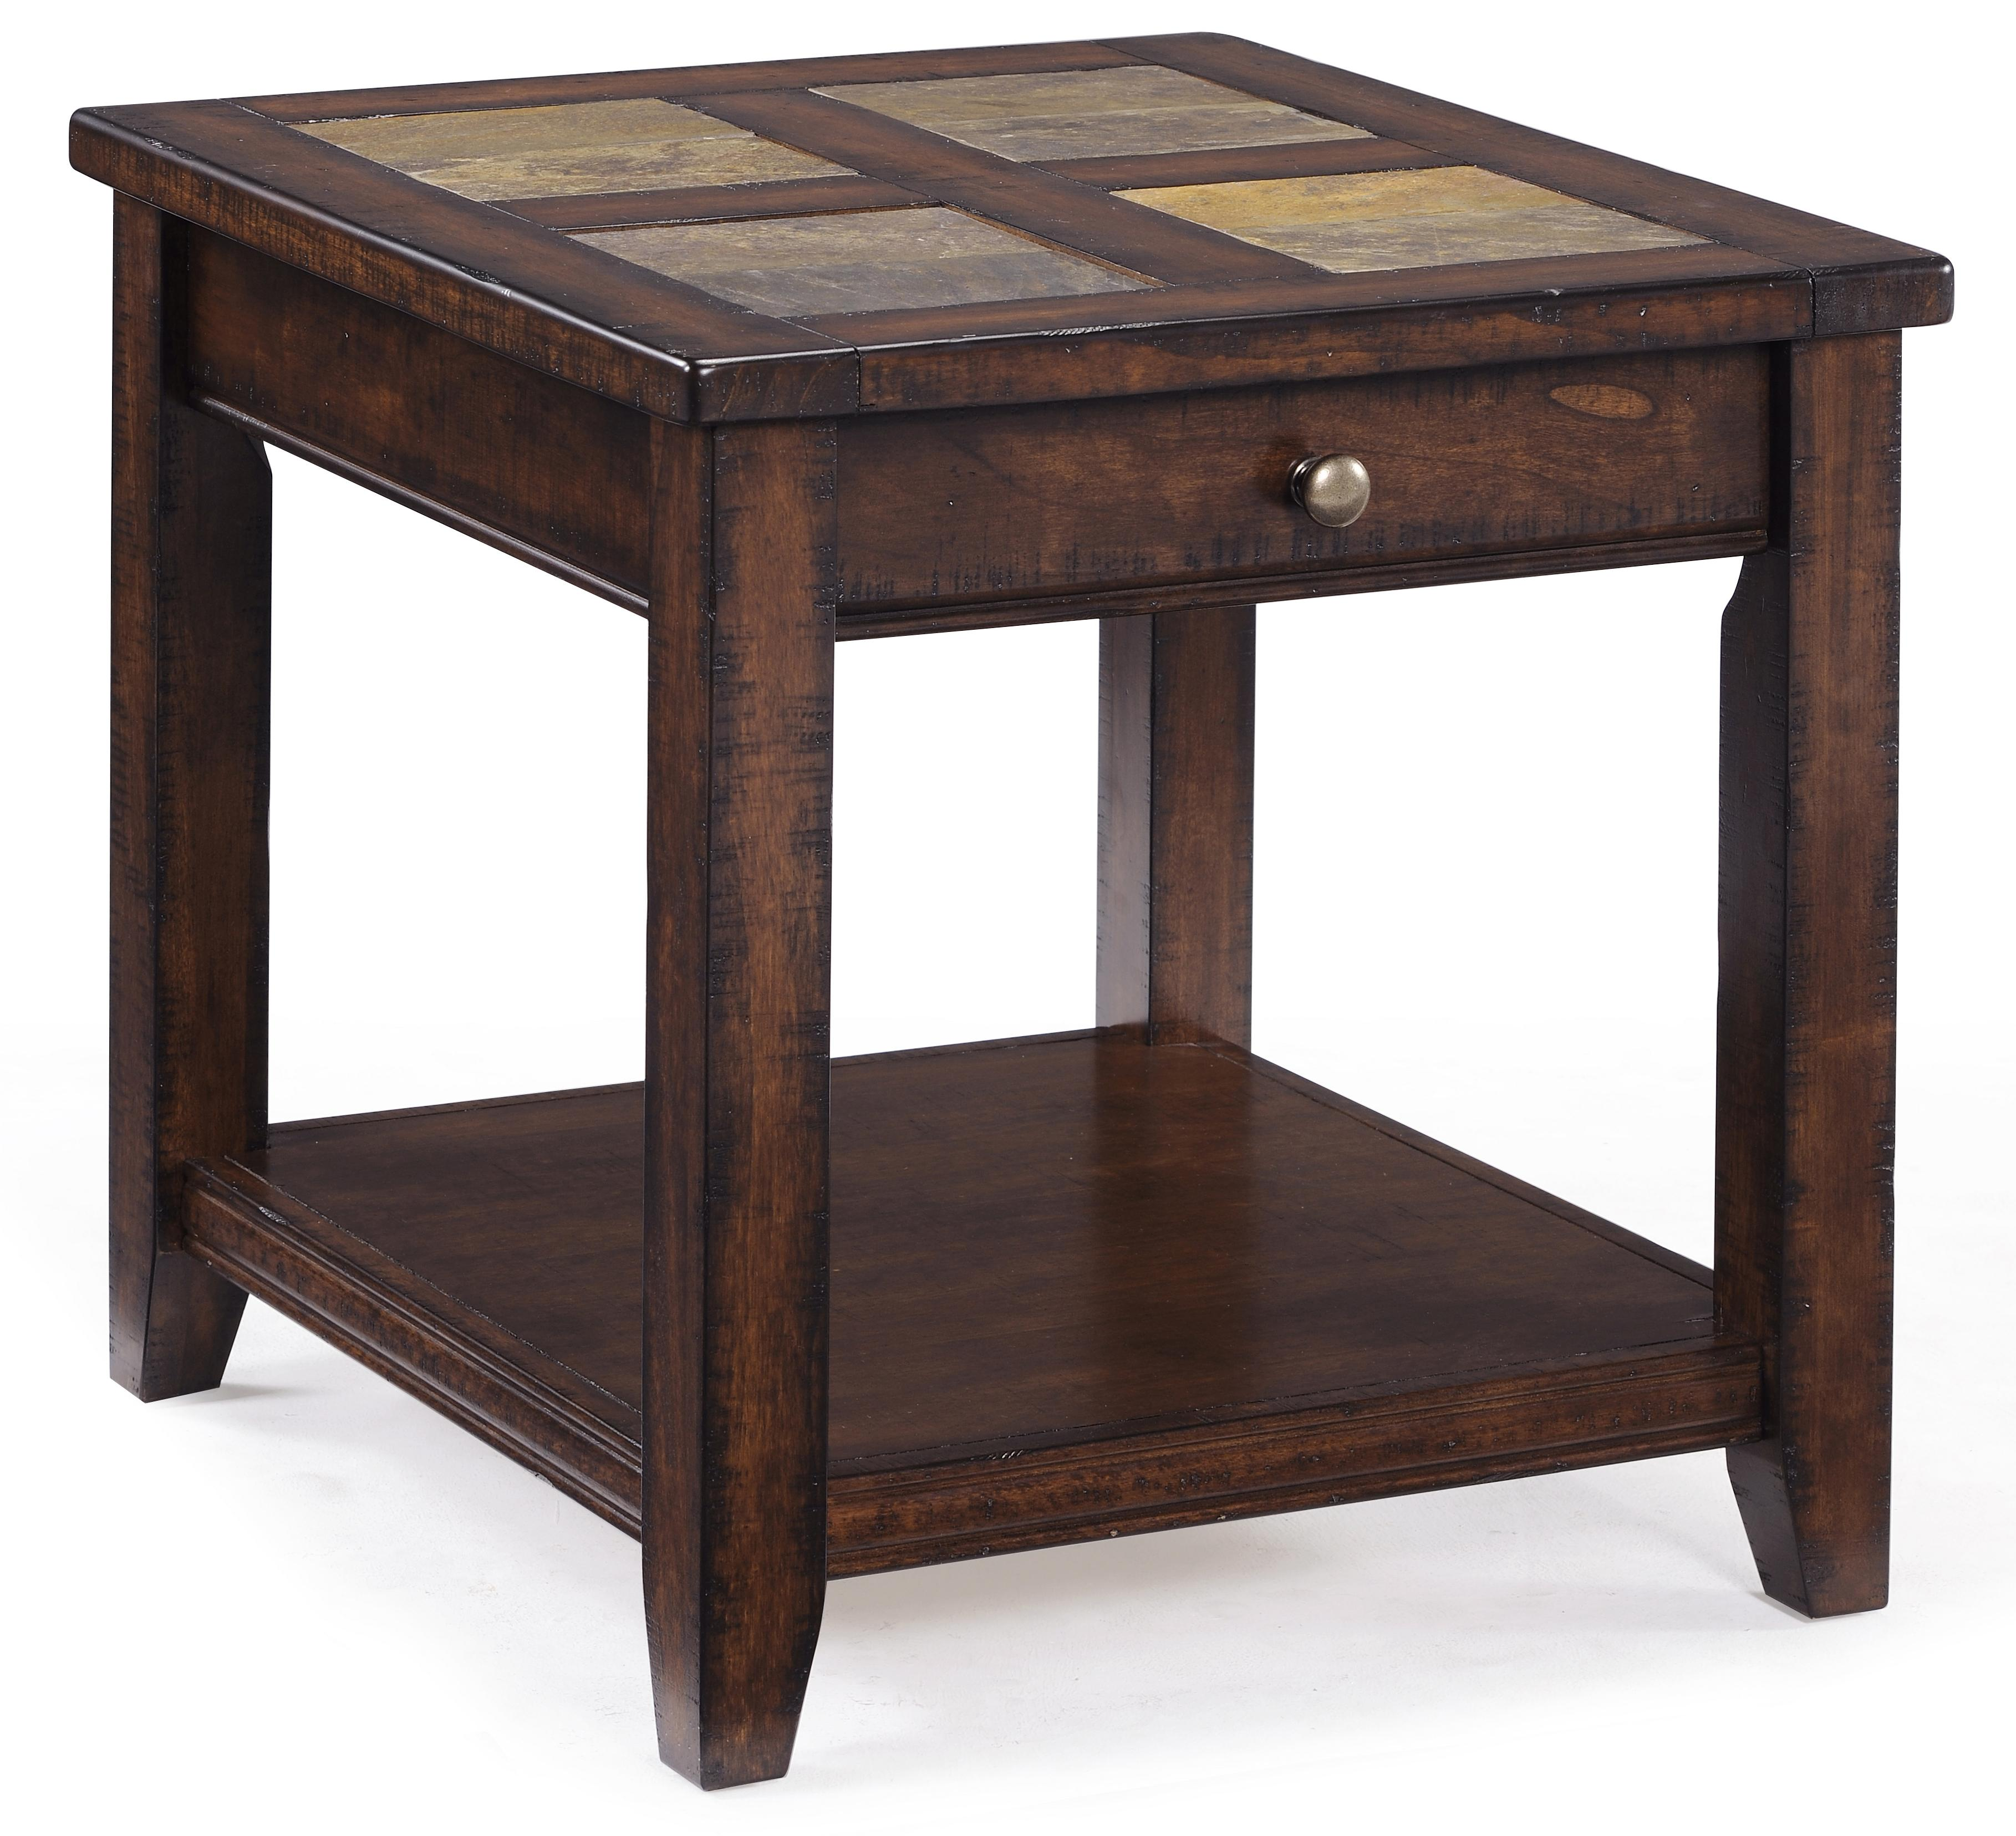 Allister Rectangular End Table by Magnussen Home at Baer's Furniture